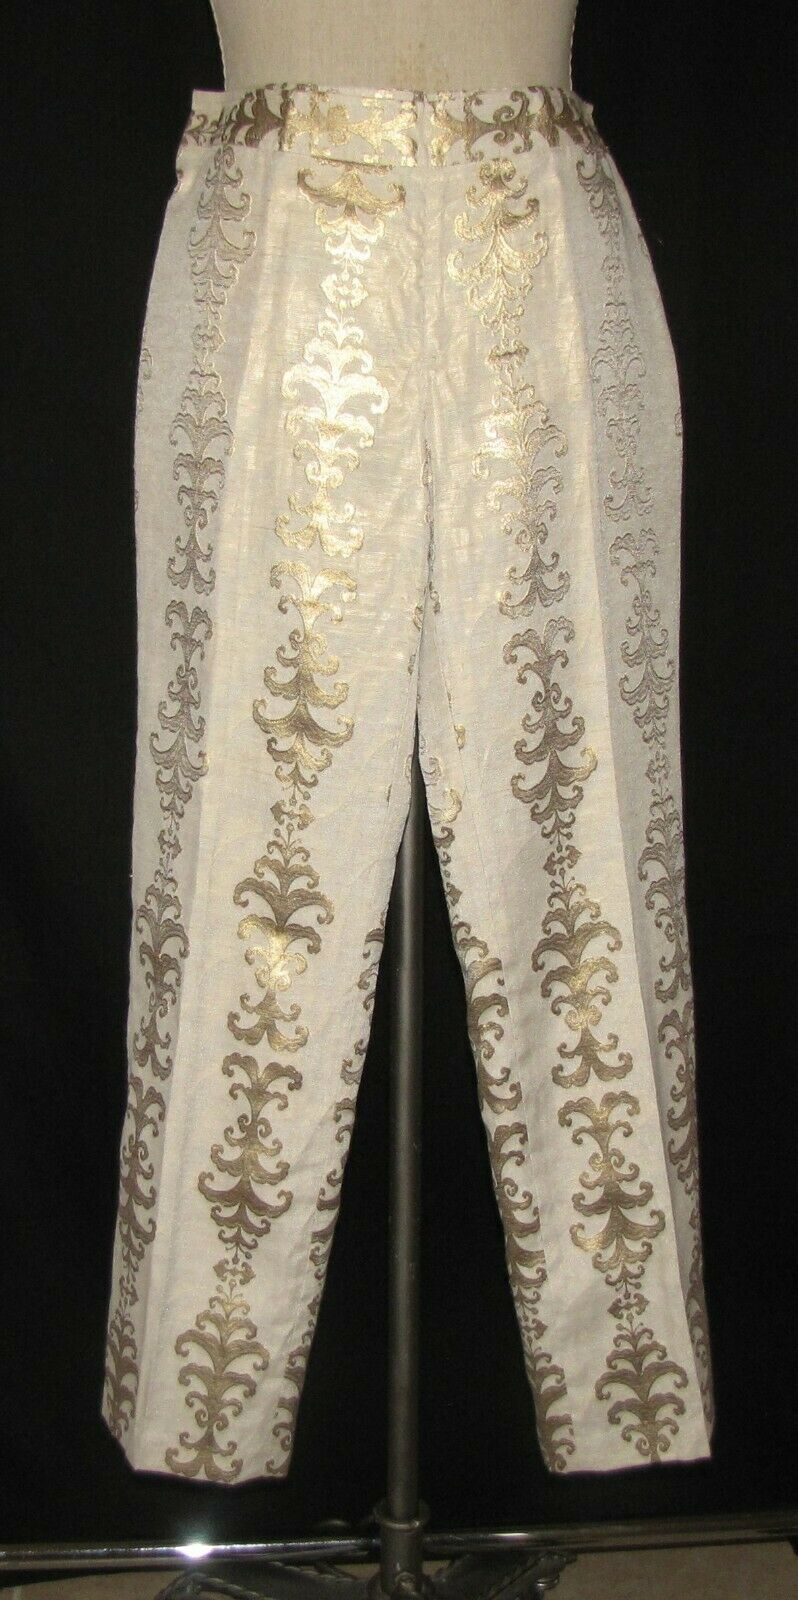 Tory Burch Beige w Metallic Gold Scroll-Like Design Ankle Cropped Trouser Pant 4